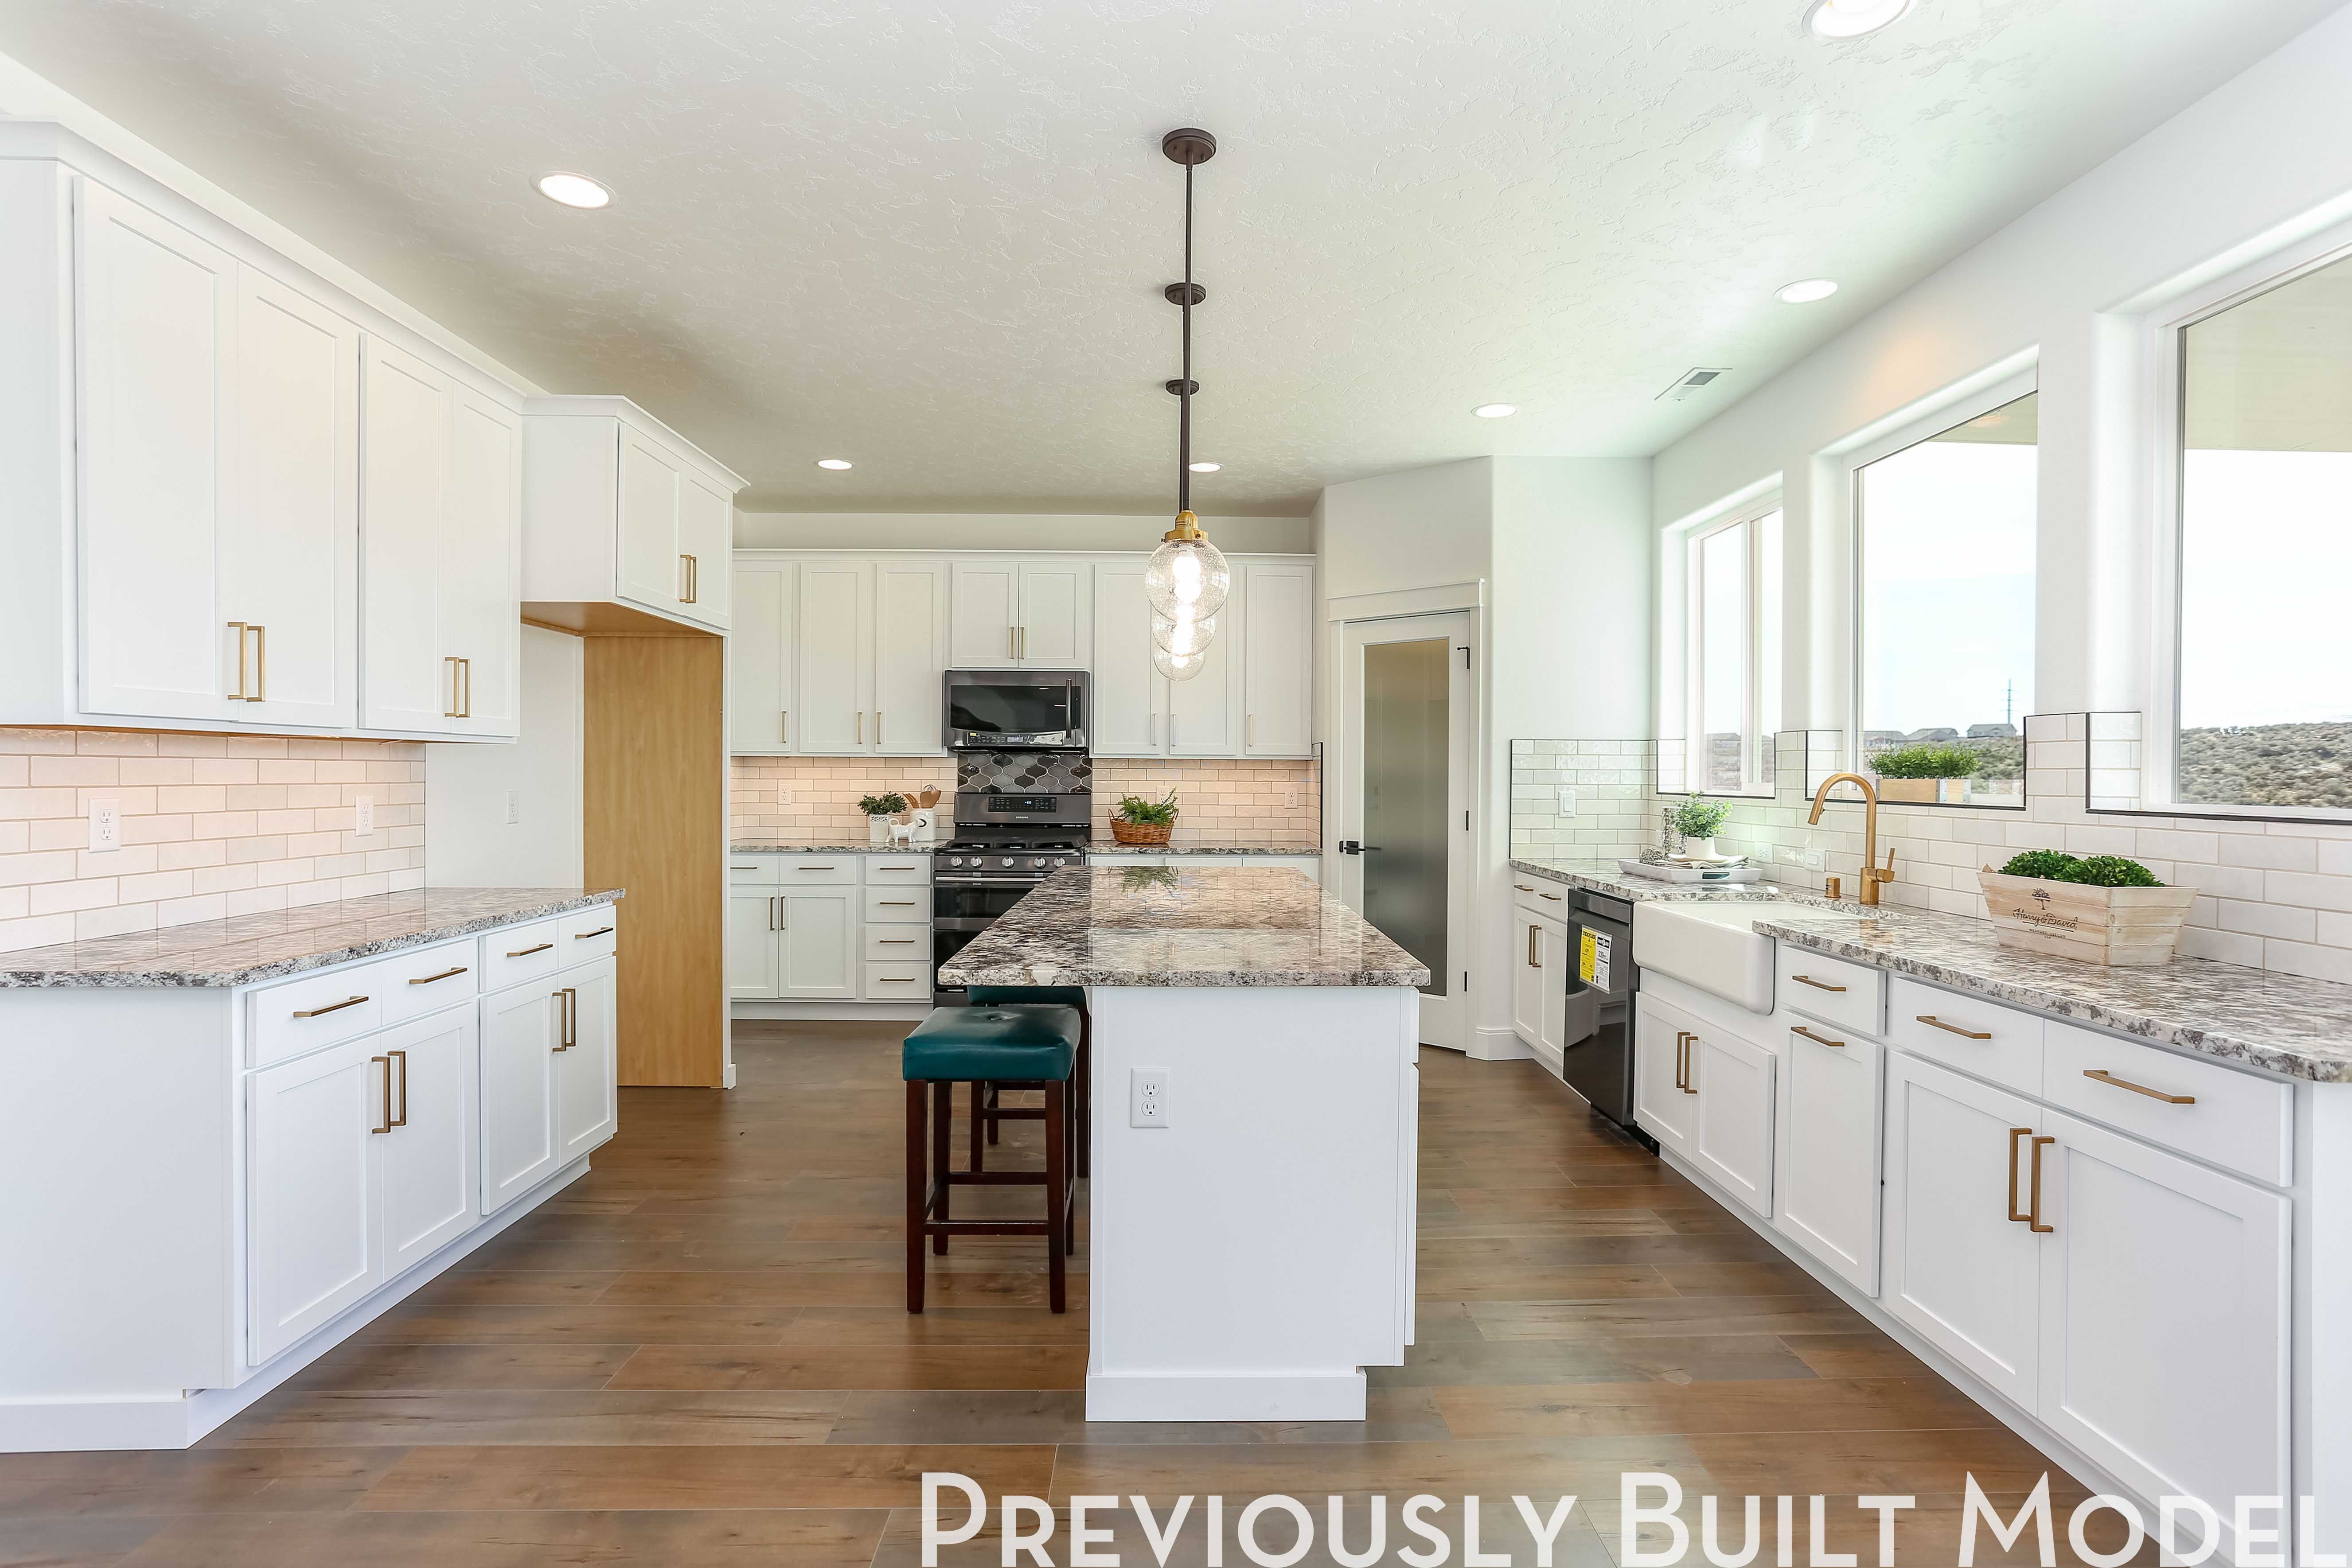 Kitchen featured in The Savannah By RYN Built Homes in Spokane-Couer d Alene, WA